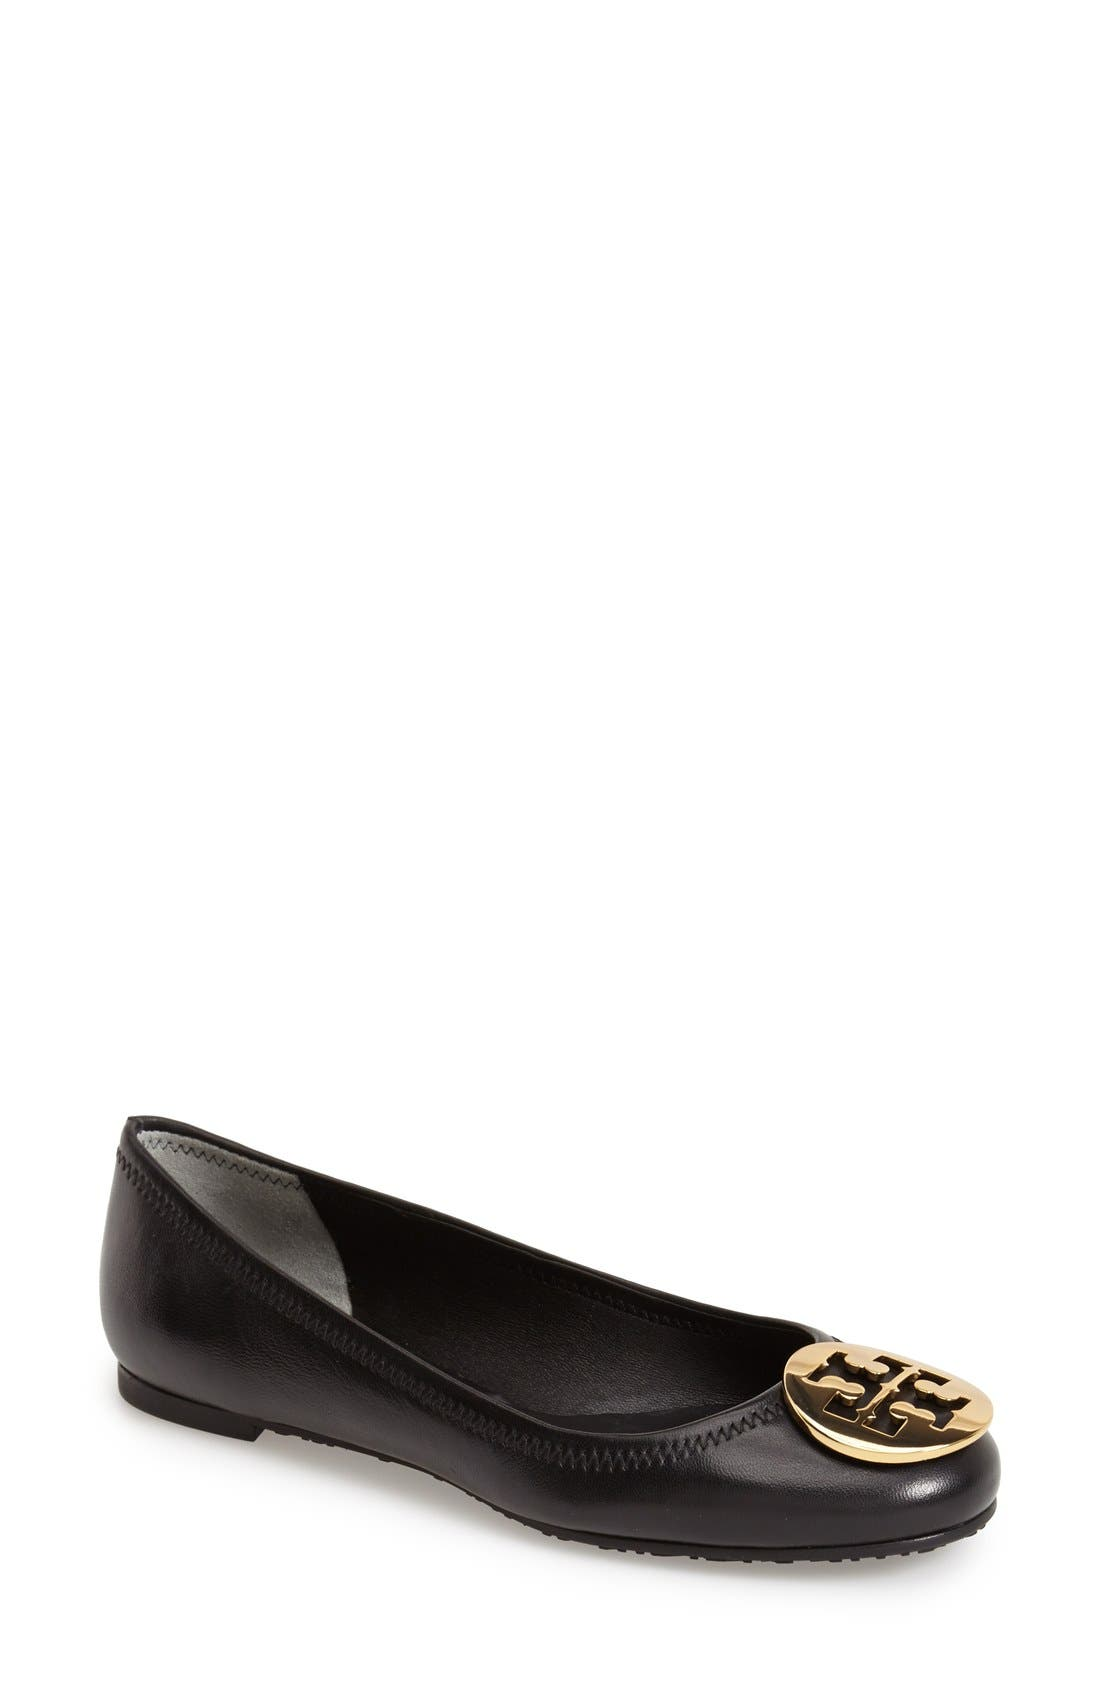 'Reva' Ballerina Flat,                         Main,                         color, Black / Gold Logo